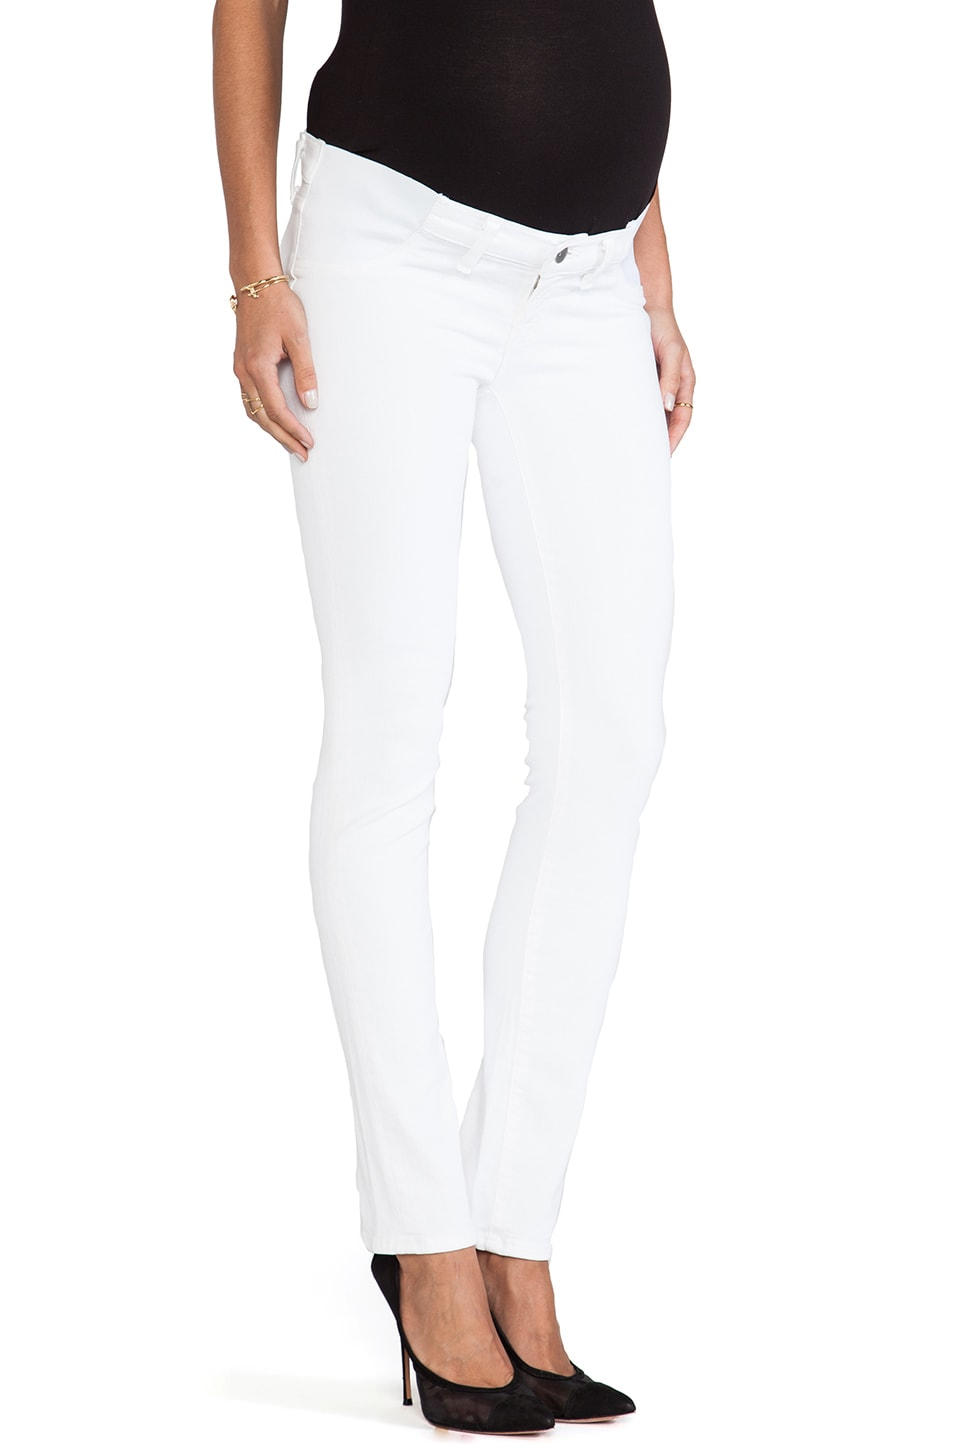 J Brand Maternity Optic White Skinny in Blanc